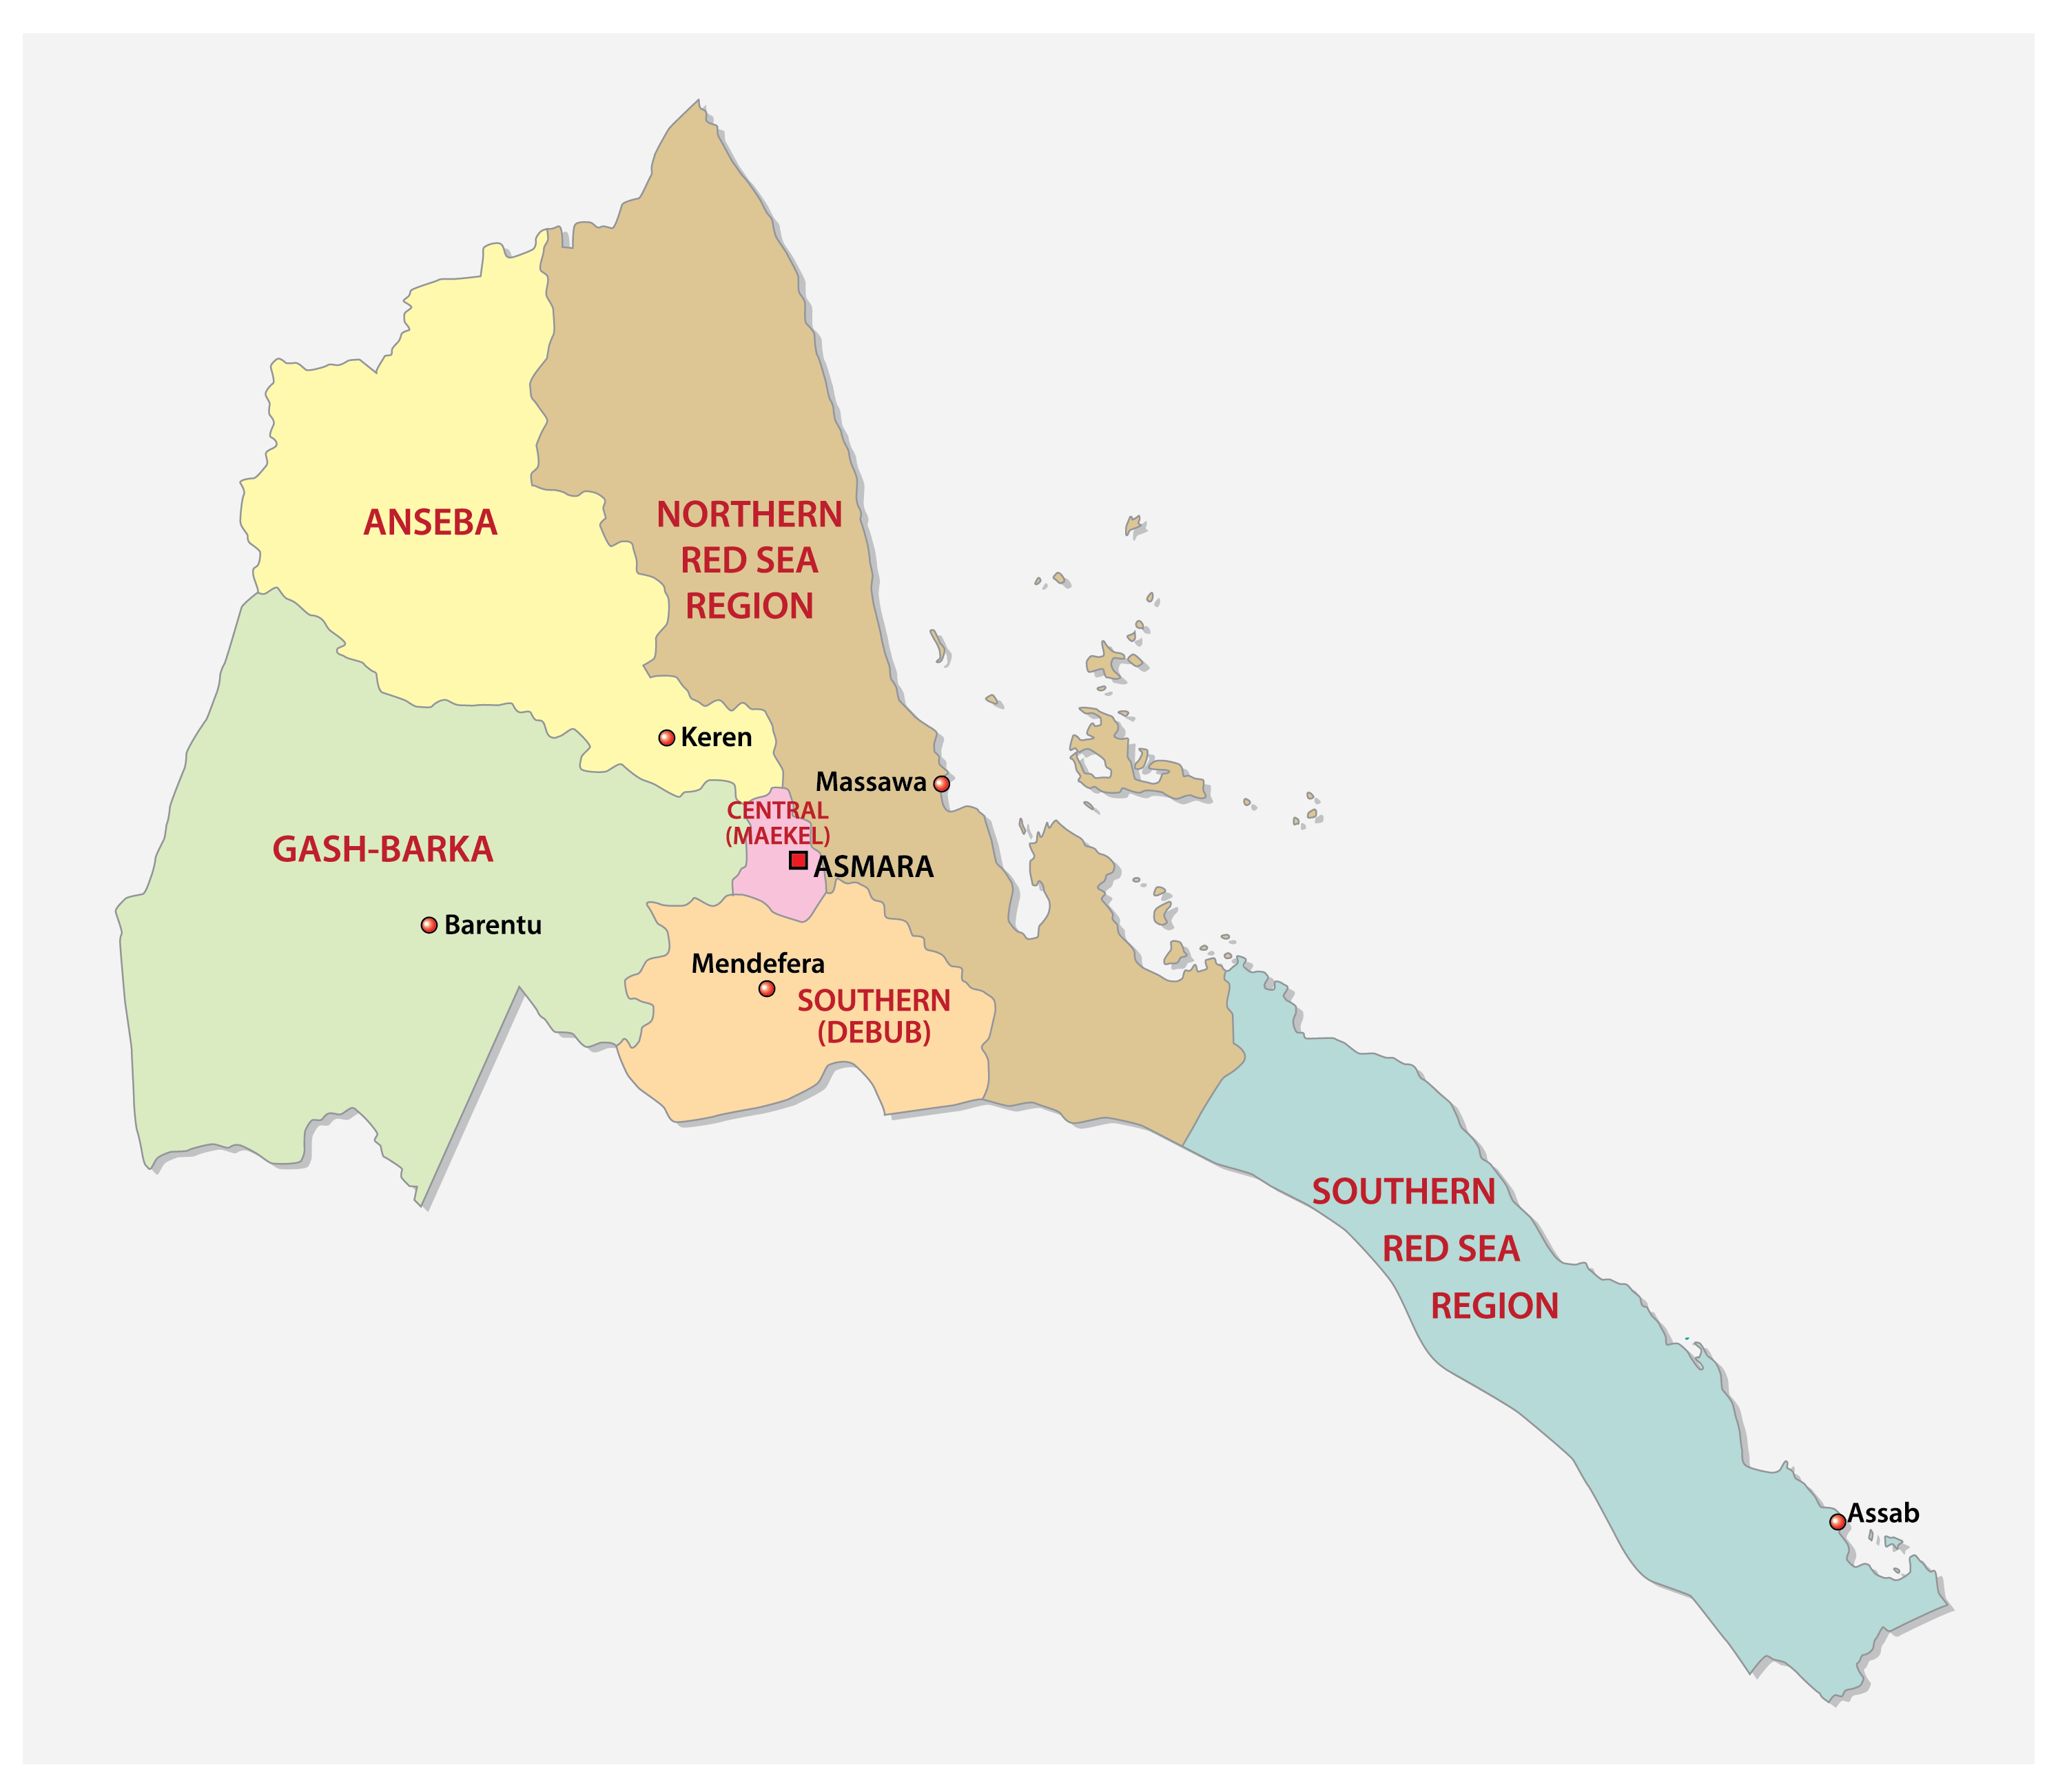 Political Map of Eritrea showing the six regions, their capitals including the national capital of Asmara.